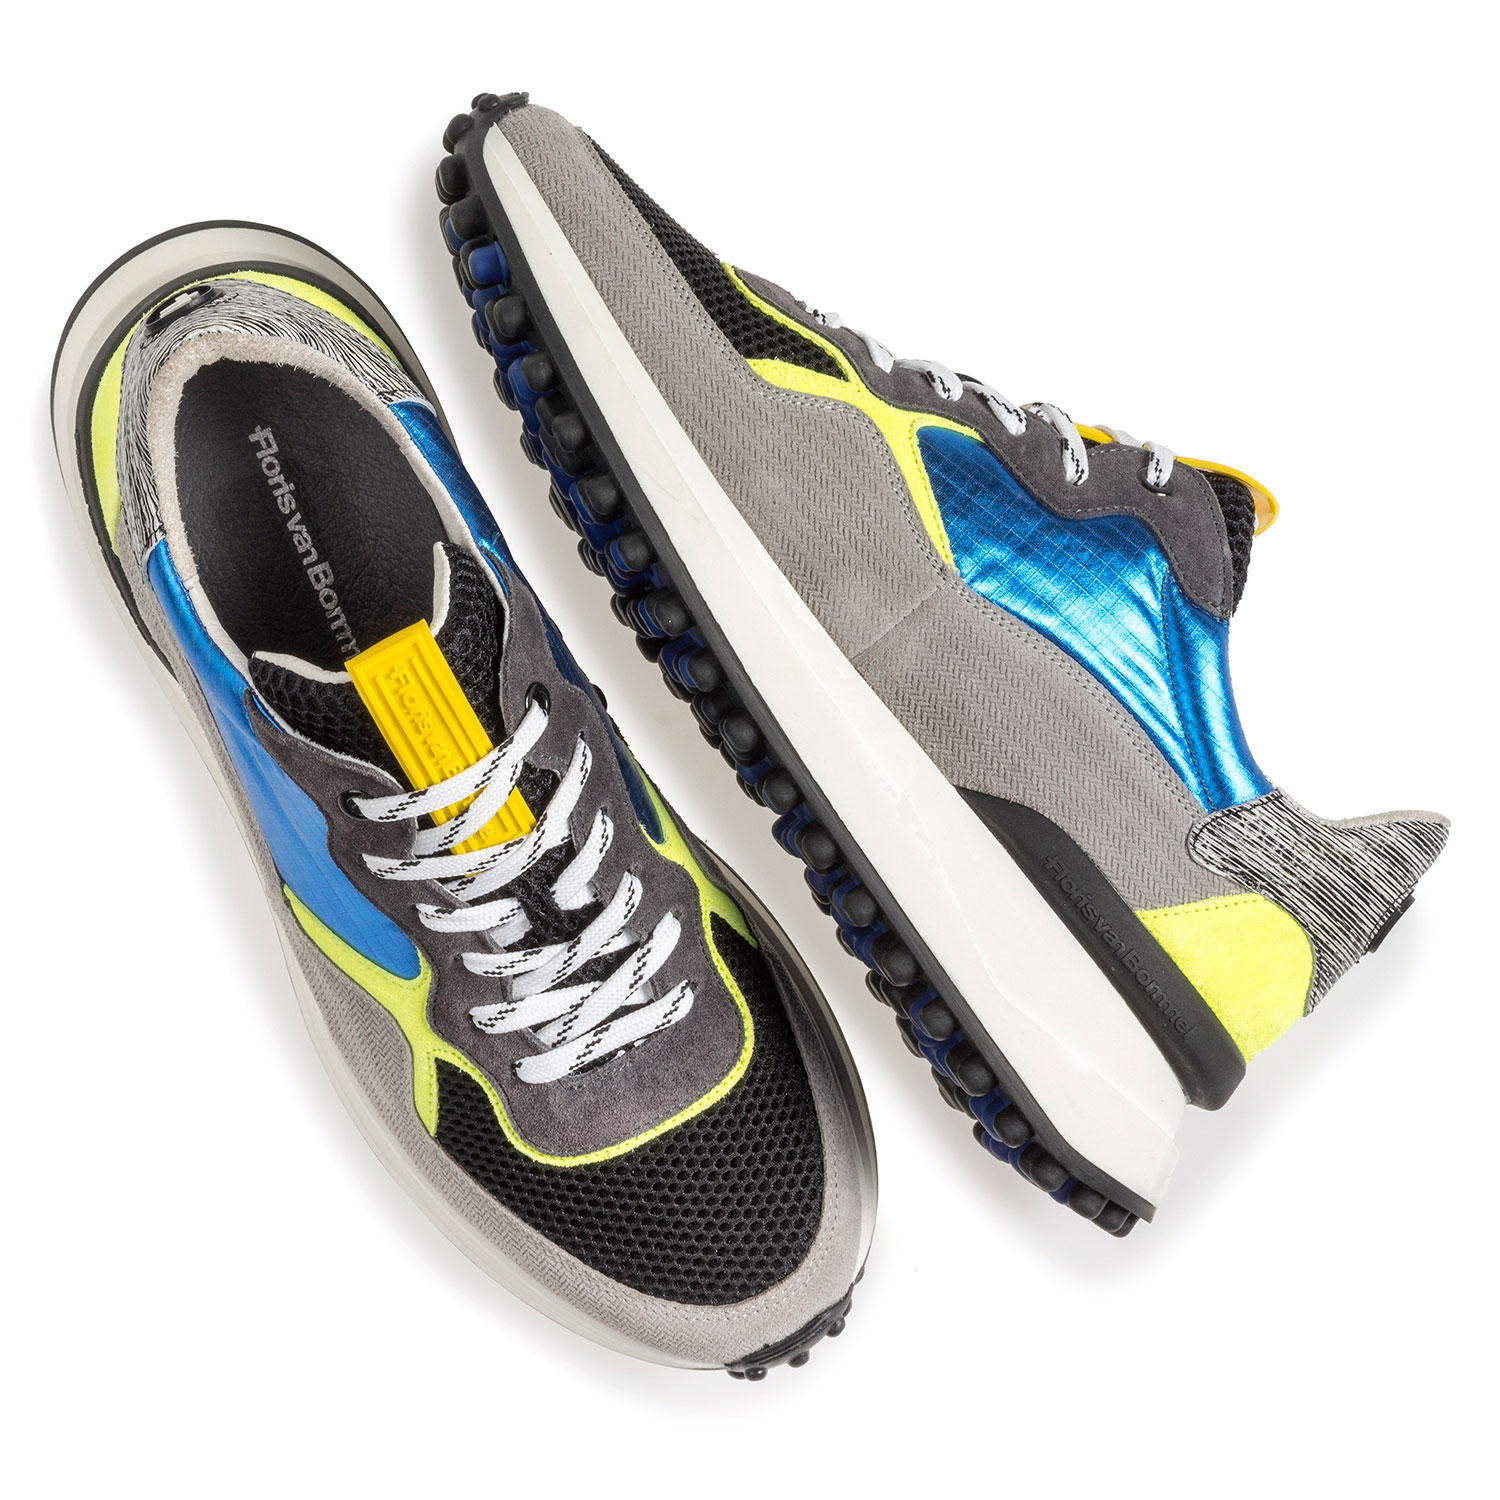 16301/18 - Multi-colour sneaker with yellow and blue details